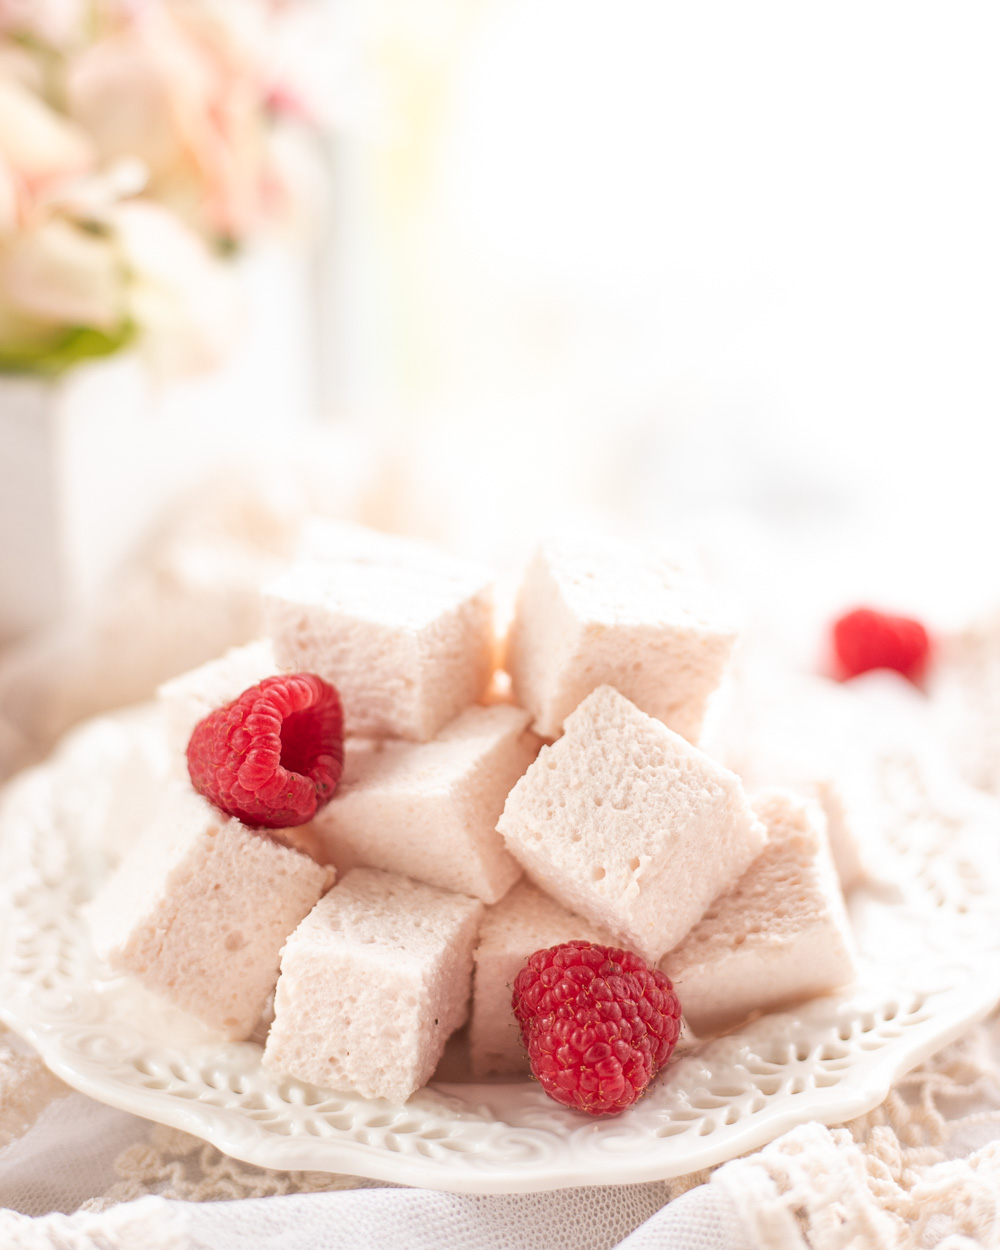 These Healthy Low-Calorie Raspberry Marshmallows are just as delicious as the traditional sugary treat, only they are naturally low-sugar, high in protein and antioxidants, and so guiltless - you can eat the whole batch at night and feel good about it! Just 14 calories a serving!